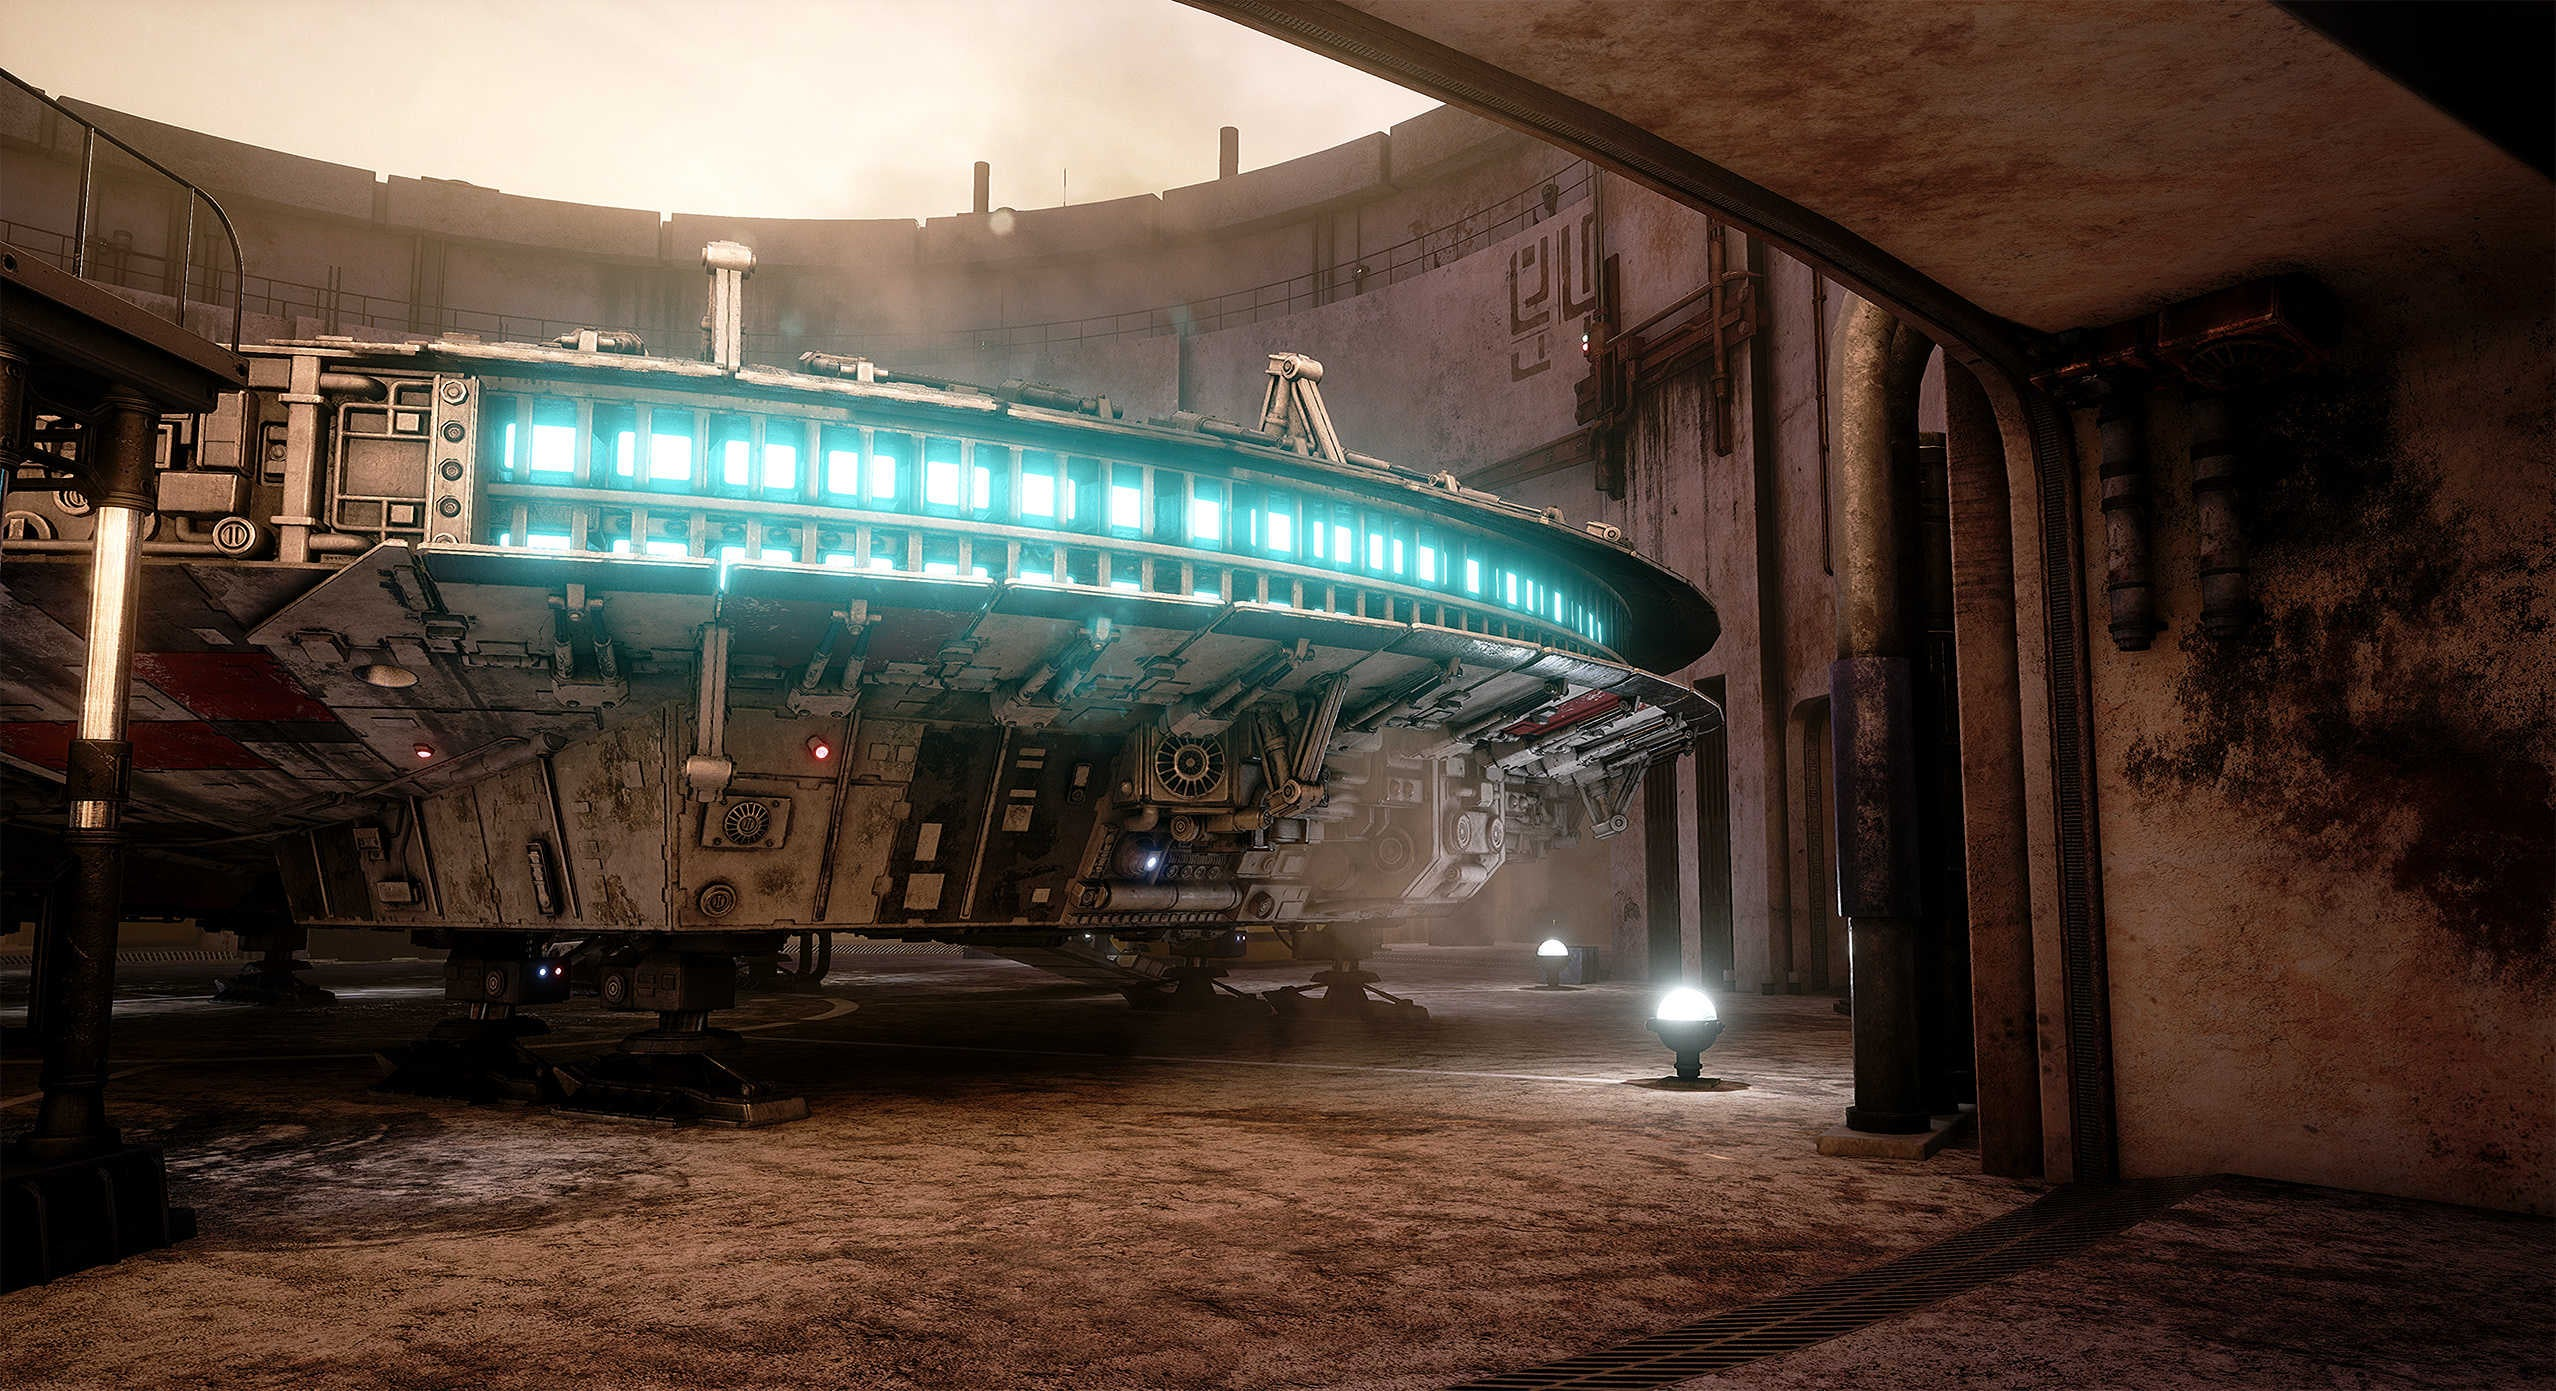 The unreal engine 4 recreation of star wars looks real for Unreal engine 4 architecture